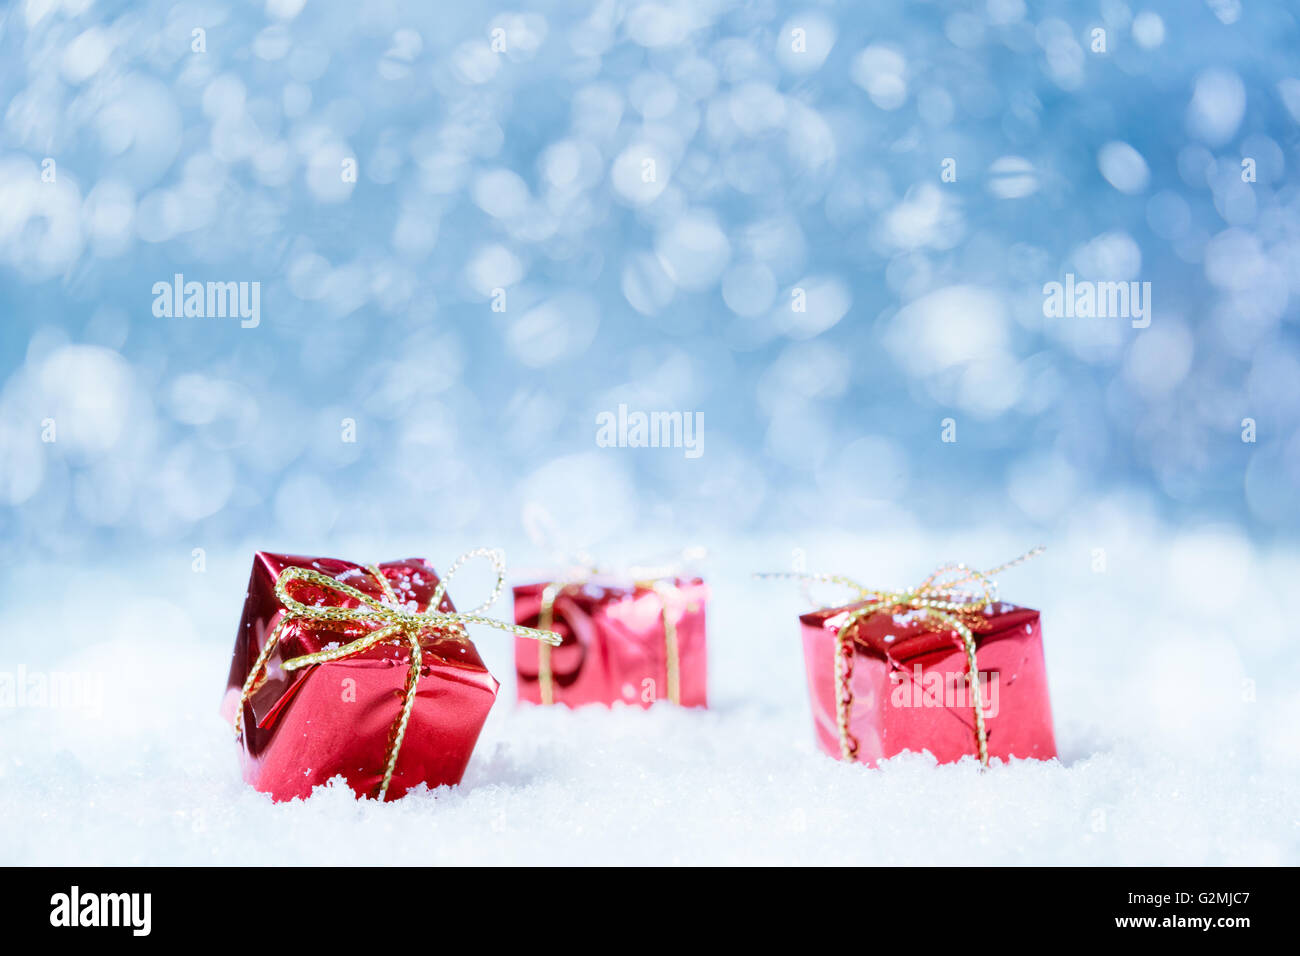 Red Gifts On A Snow With Blue Background For A Greeting Card Or